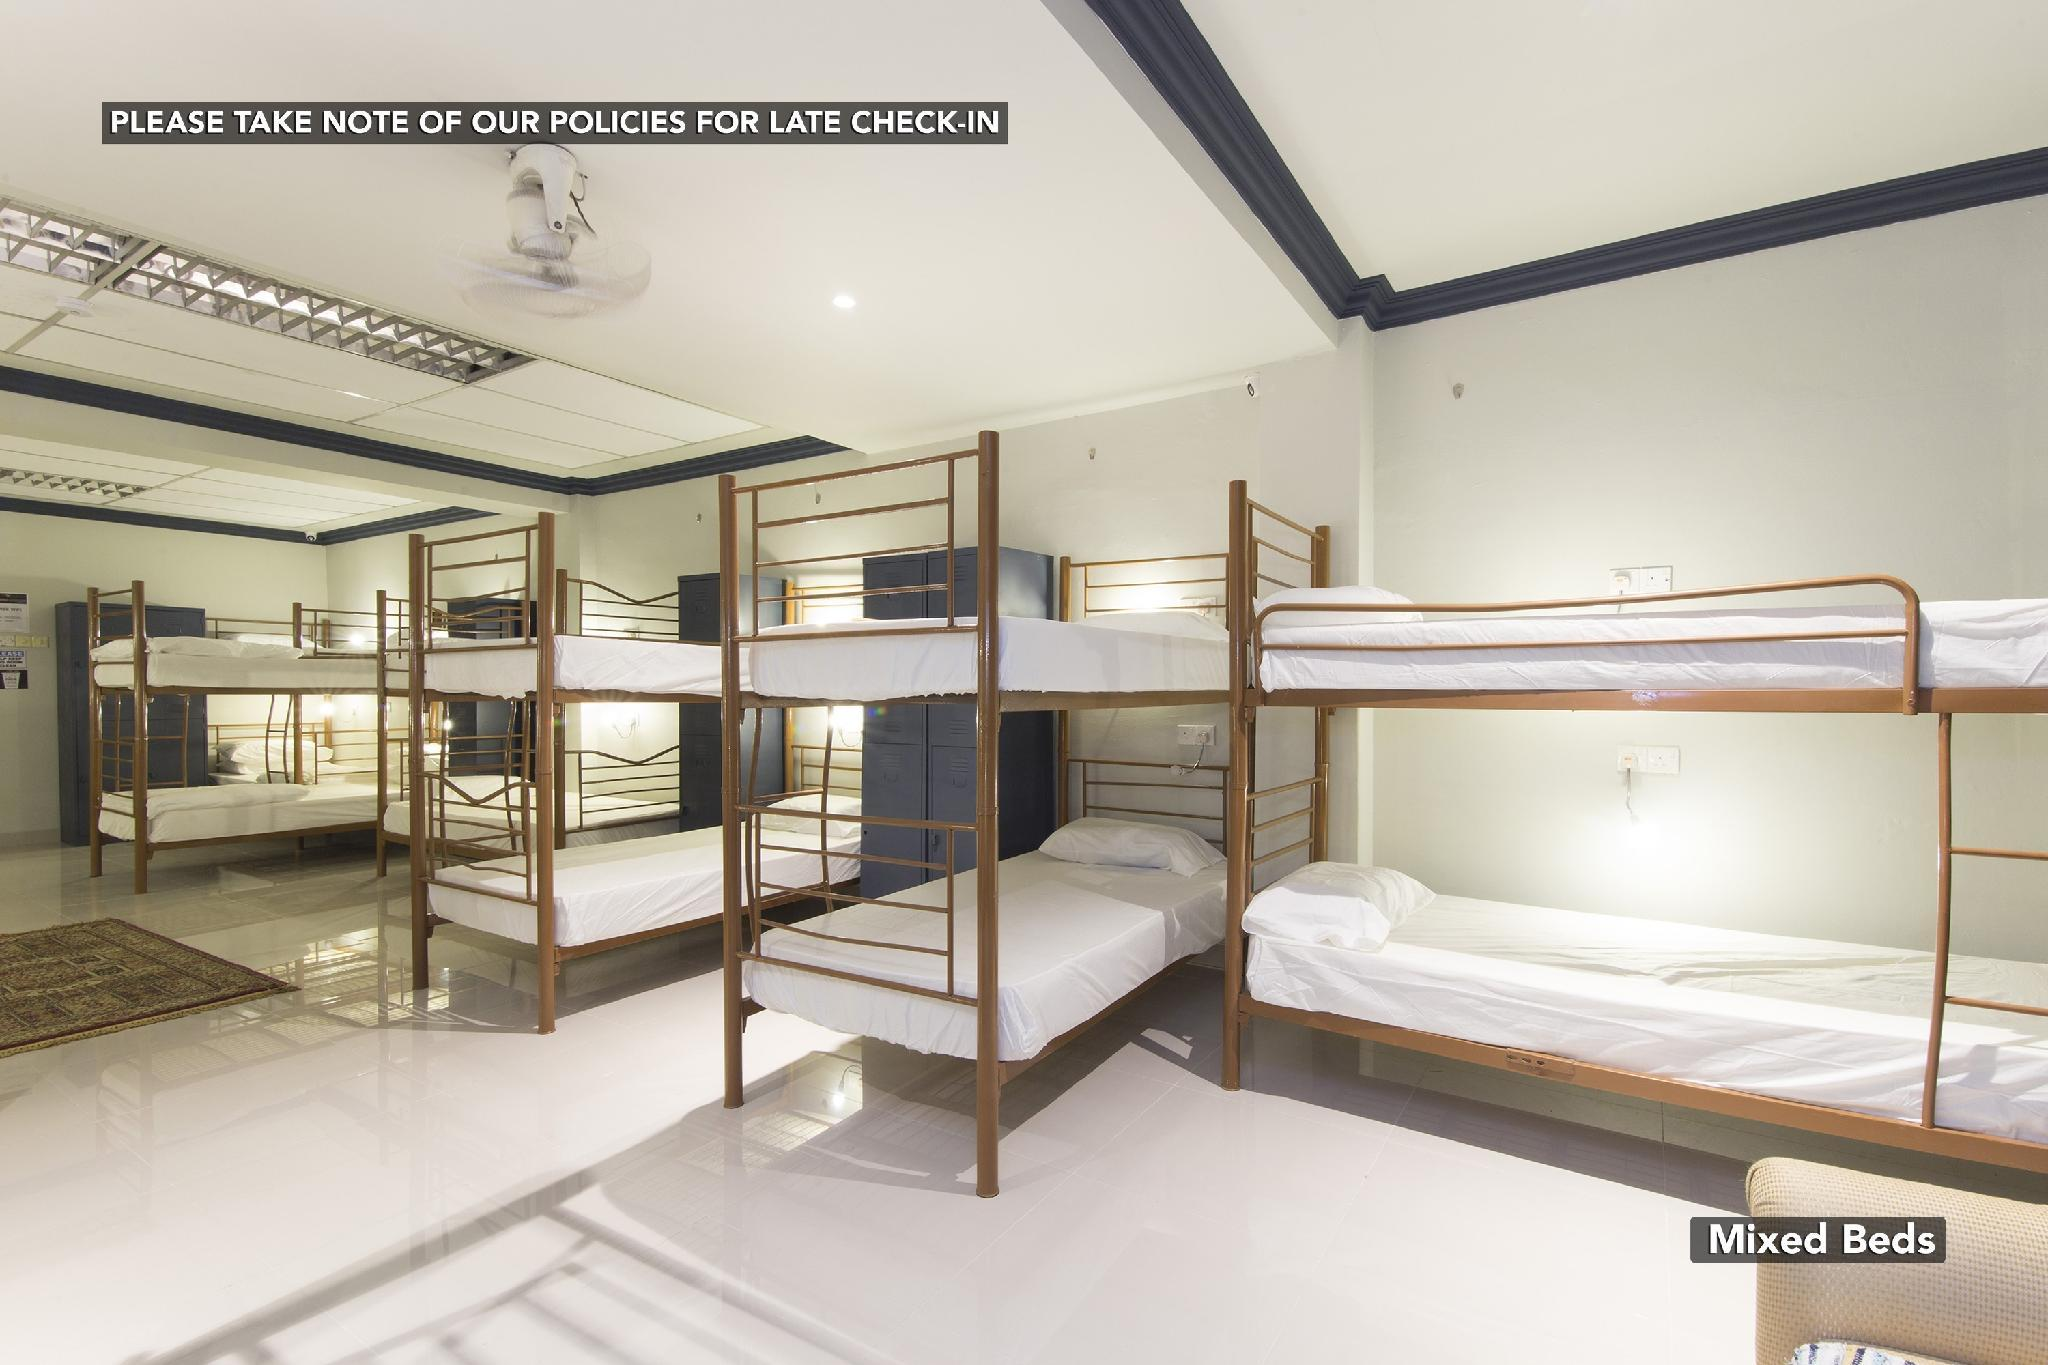 Private Room with Bunk Bed - Mixed